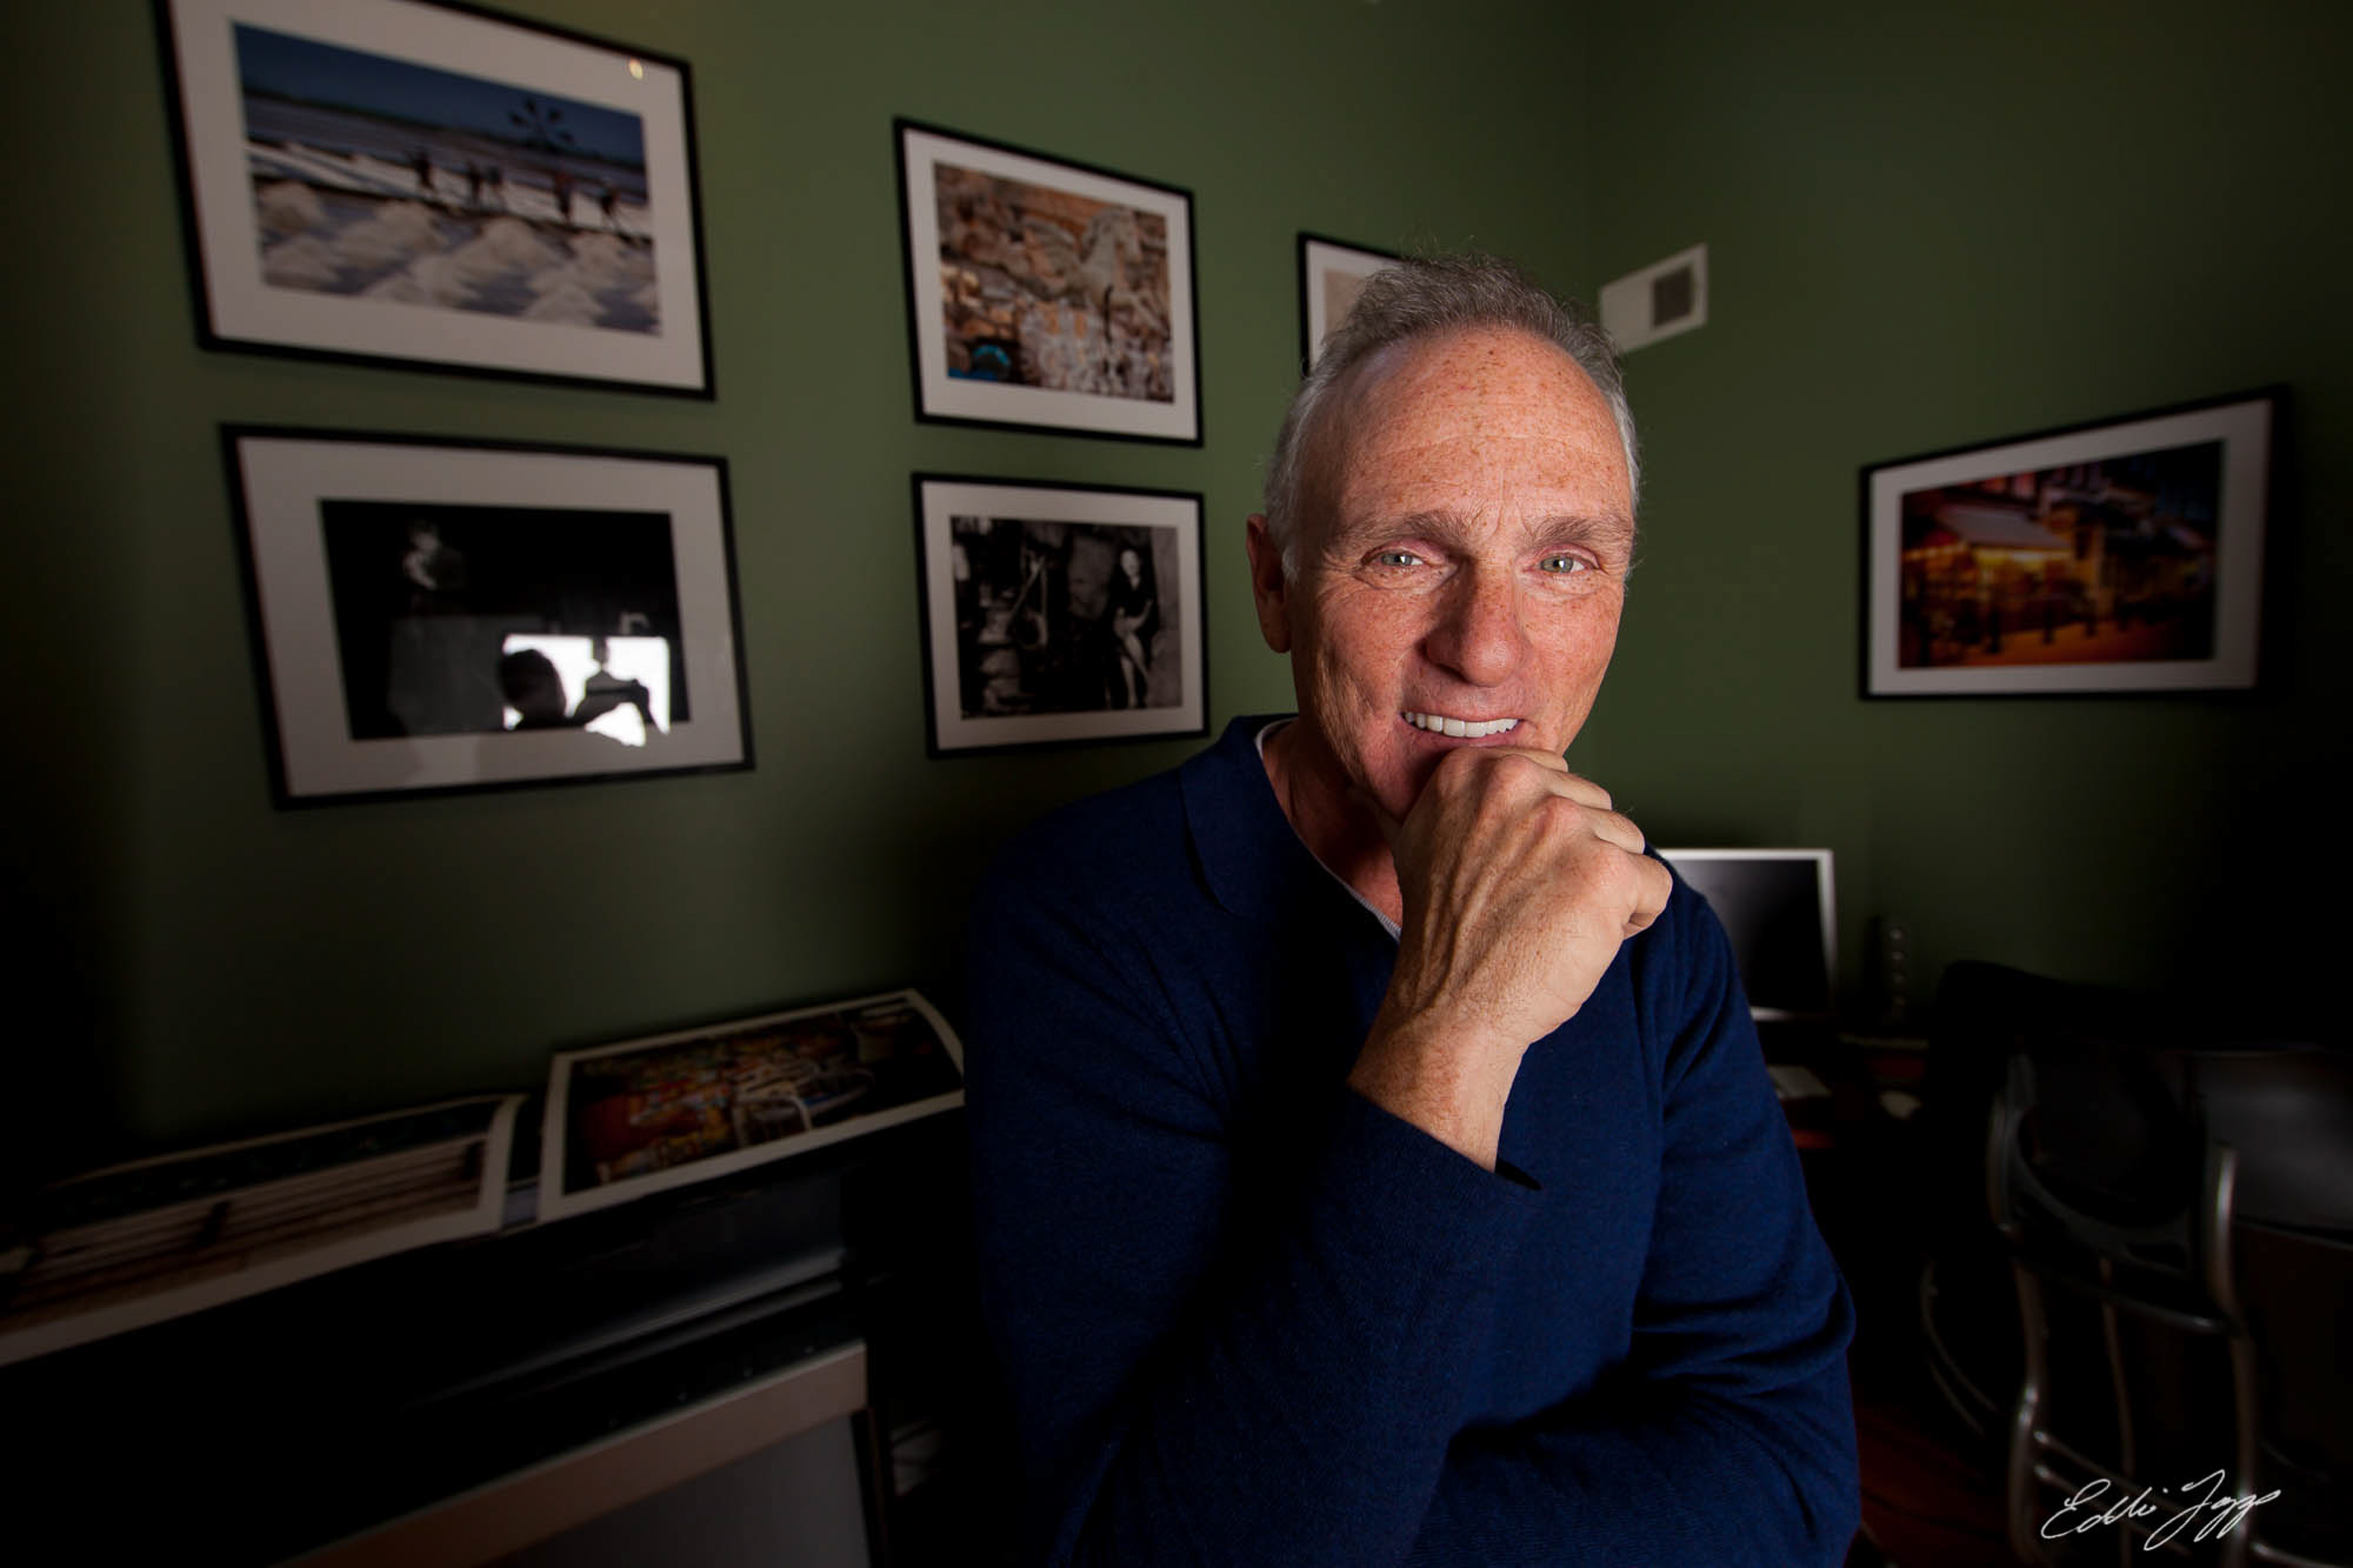 Joe Regalbuto